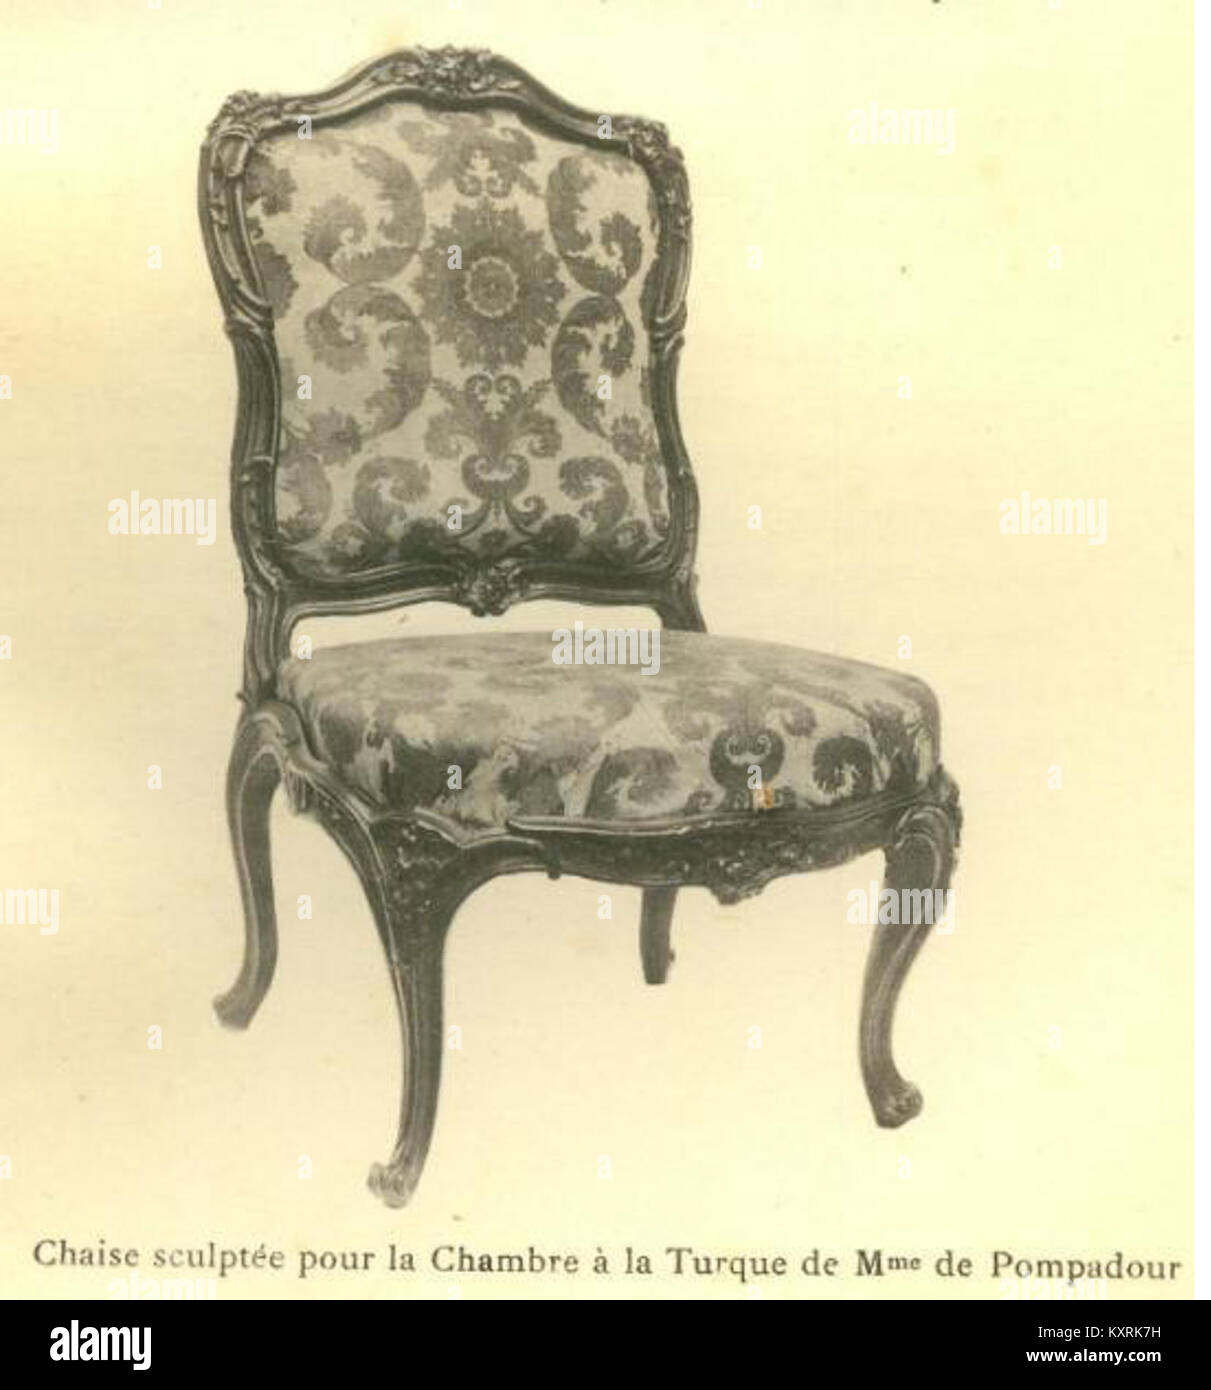 Chaise Sculptée Pour La Chambre à La Turque Collection Paul Biver Stock Photo Alamy